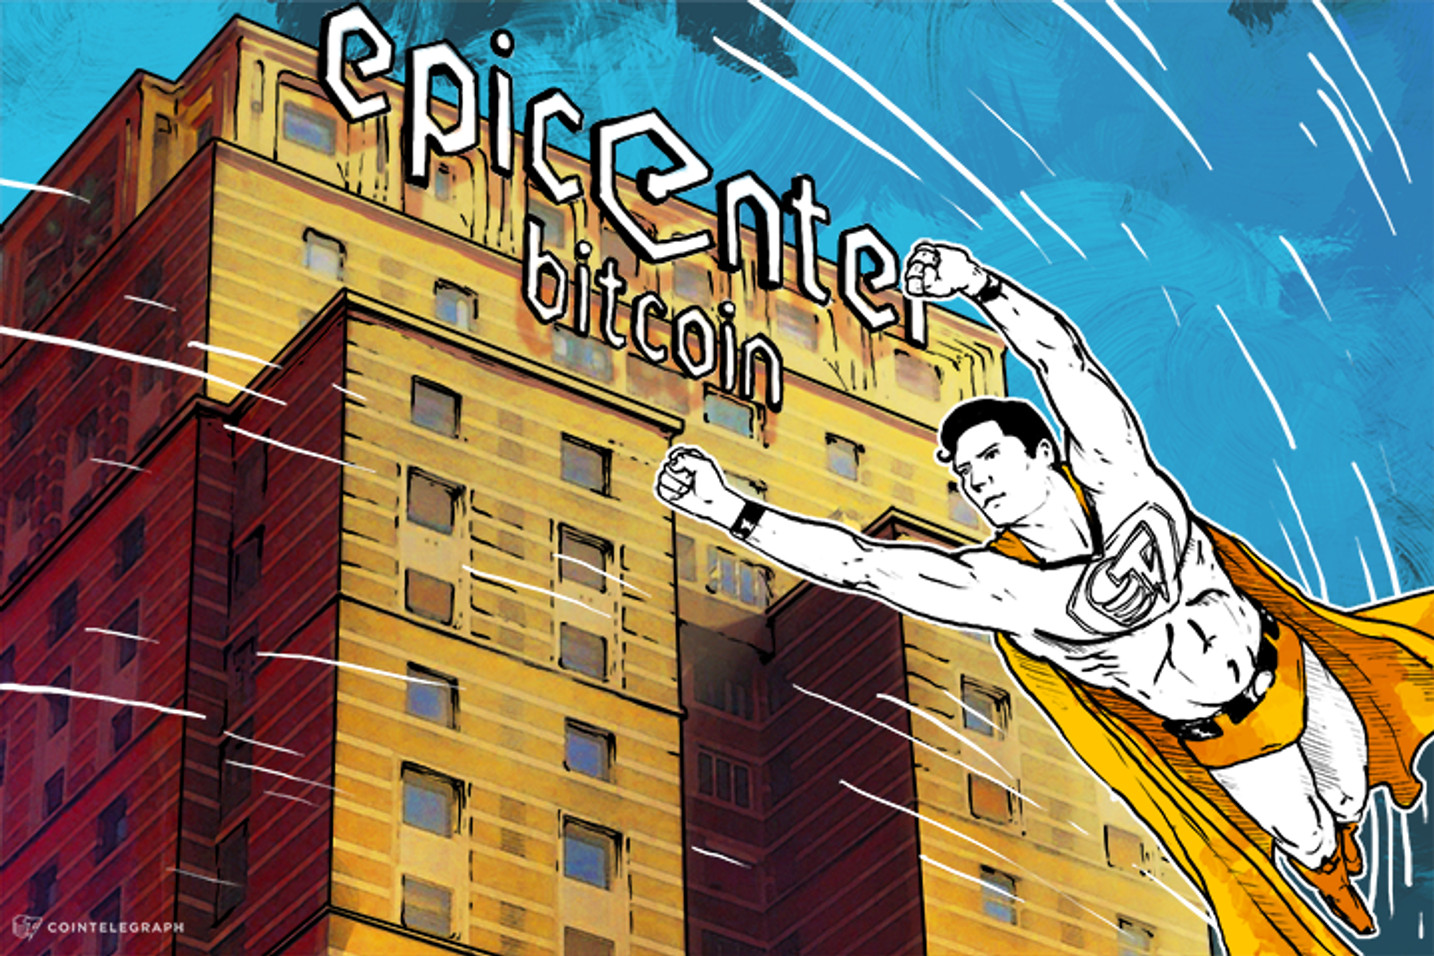 Epicenter Bitcoin Meets Cointelegraph: The Rise of Independent Media